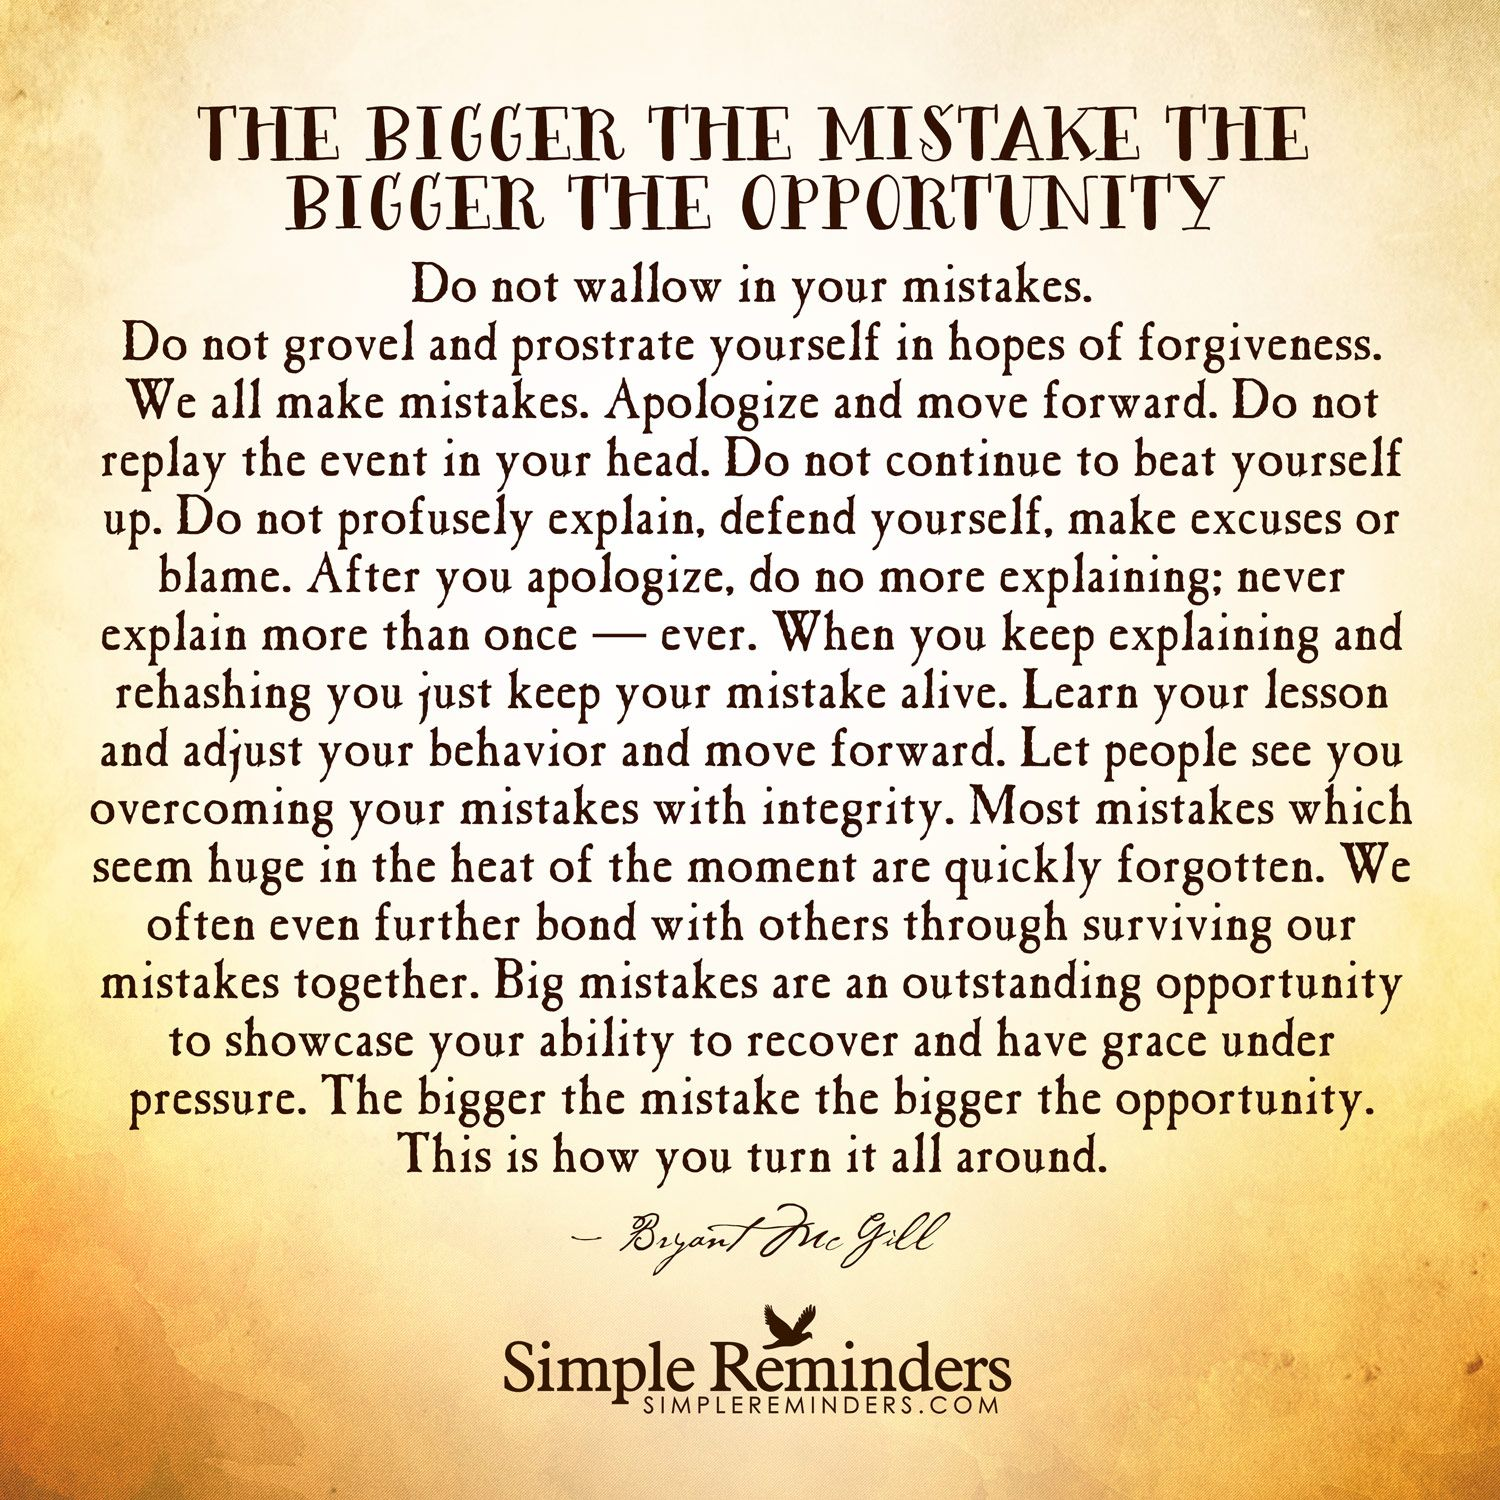 Pin By Beth Toeset On Life Inspiration Short Inspirational Quotes Quotes To Live By Words